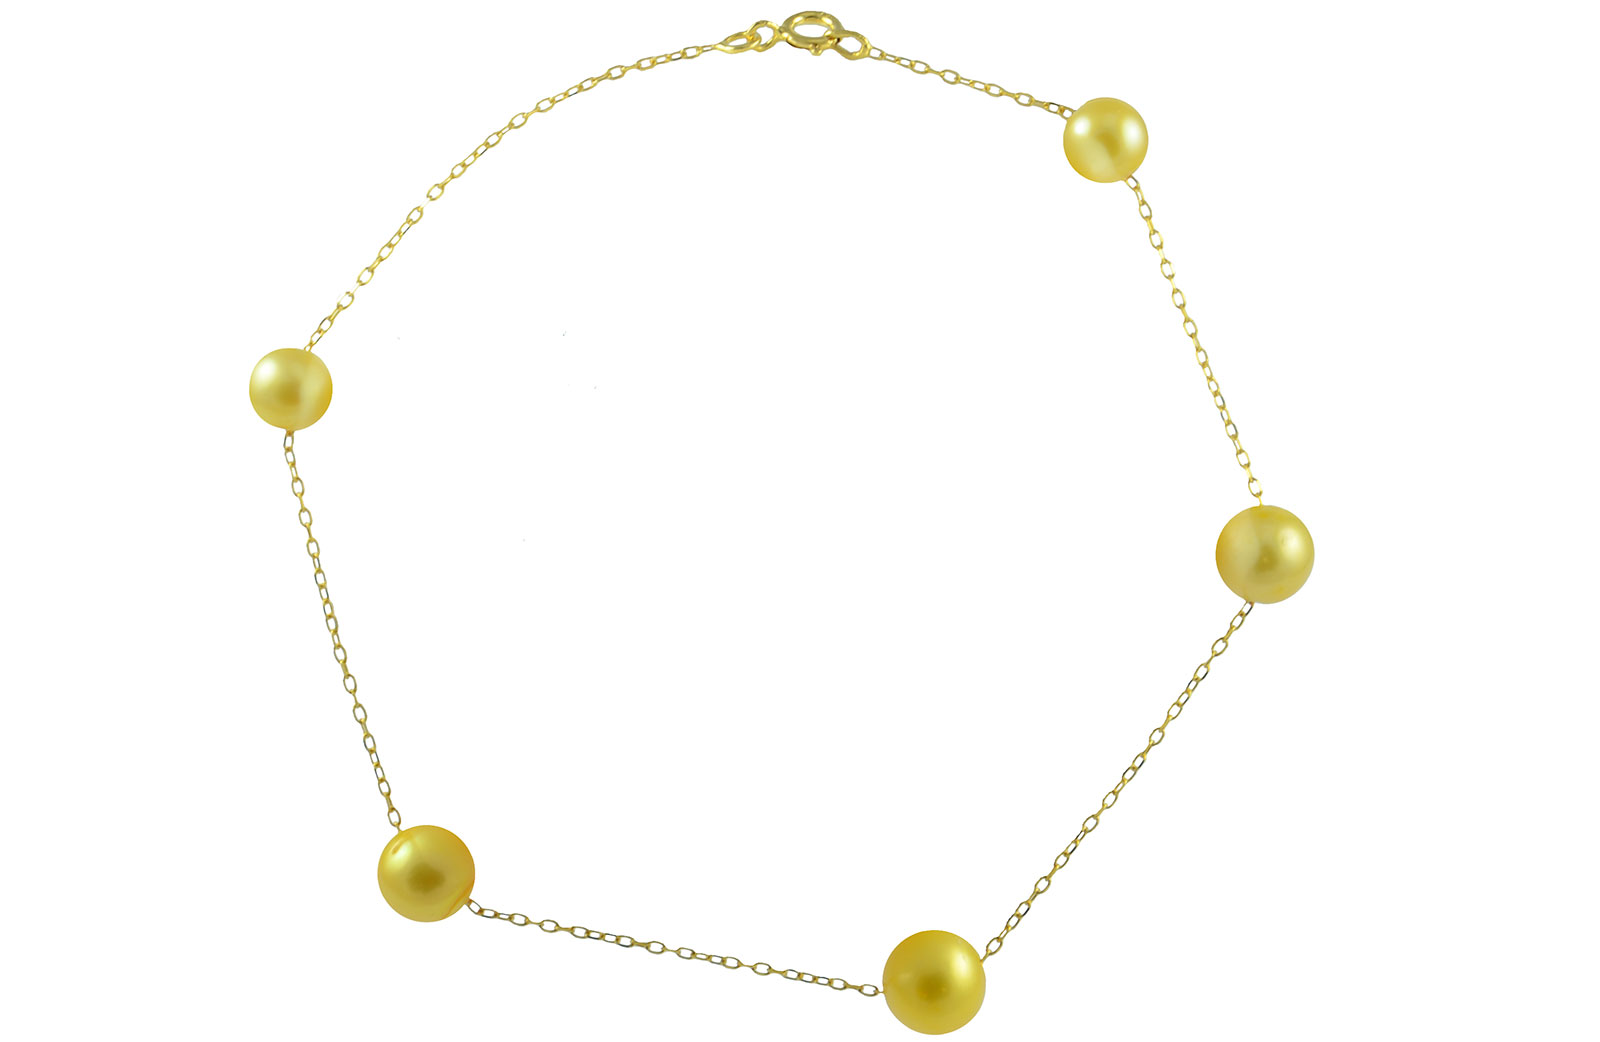 Vp Jewels 18K Solid Gold 5-7MM Gradual  Built-in Golden-Yellow Pearl Bracelet